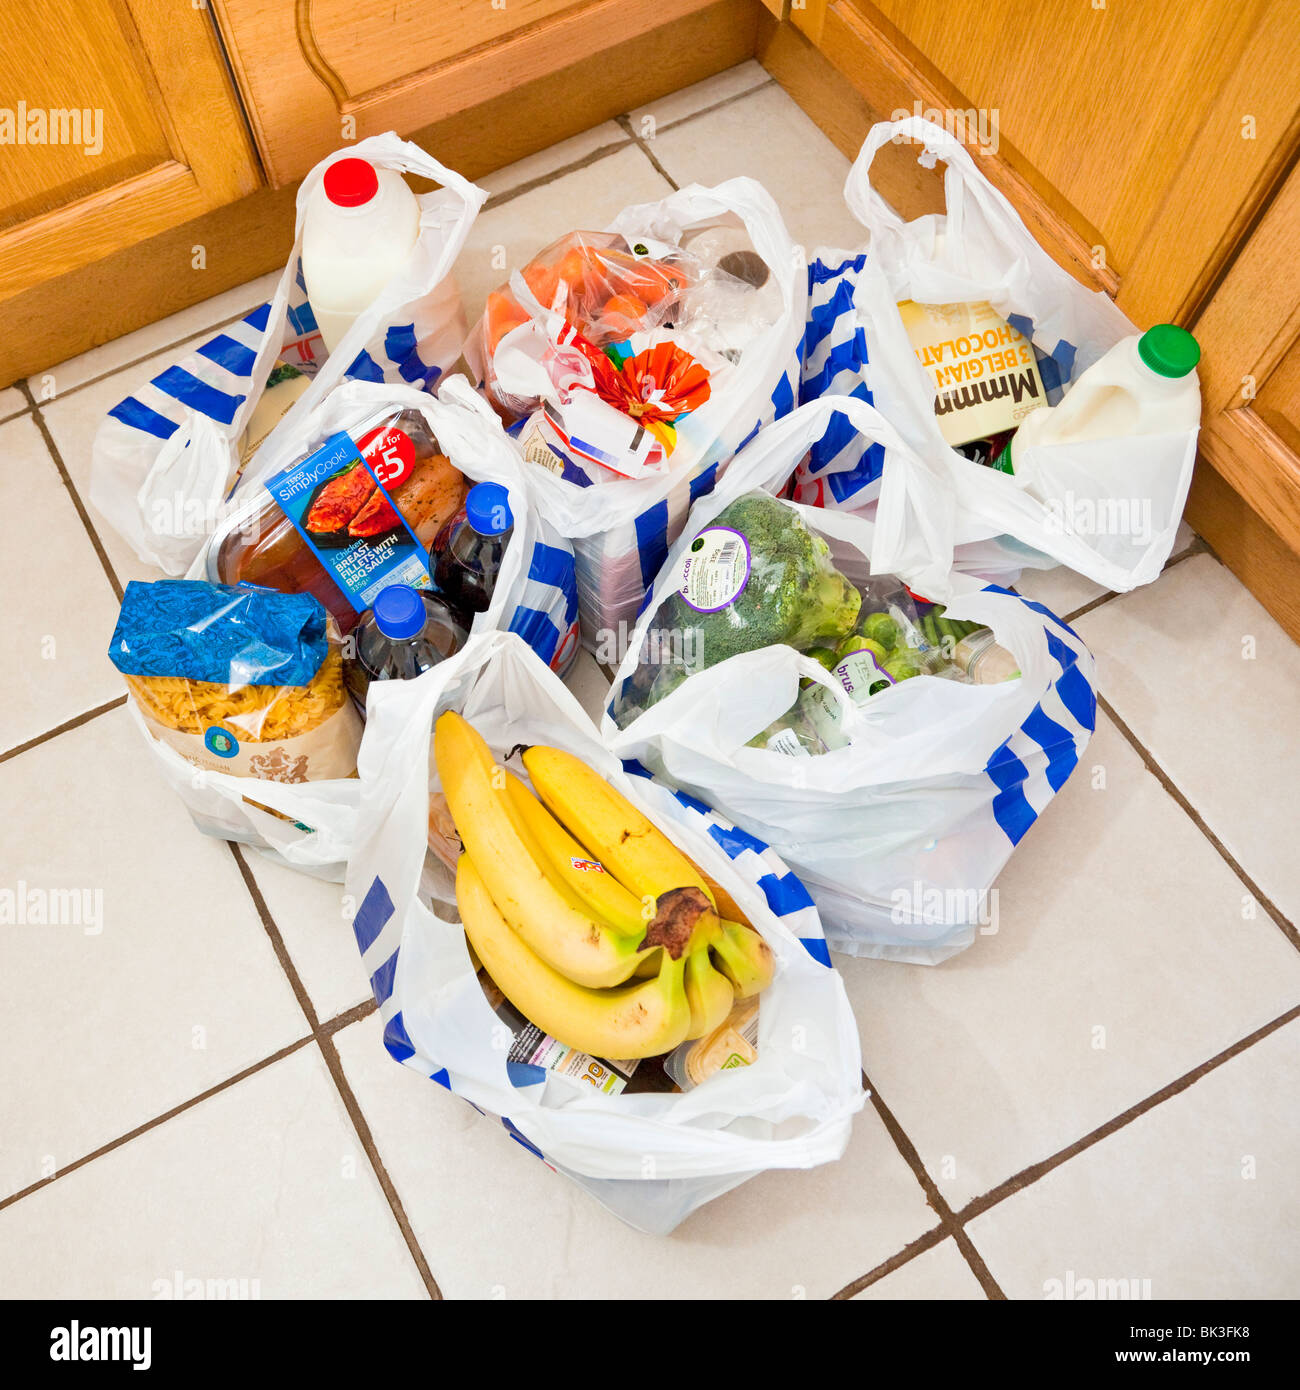 Grocery bags, carrier bags, shopping bags on a kitchen floor, England, UK - Stock Image